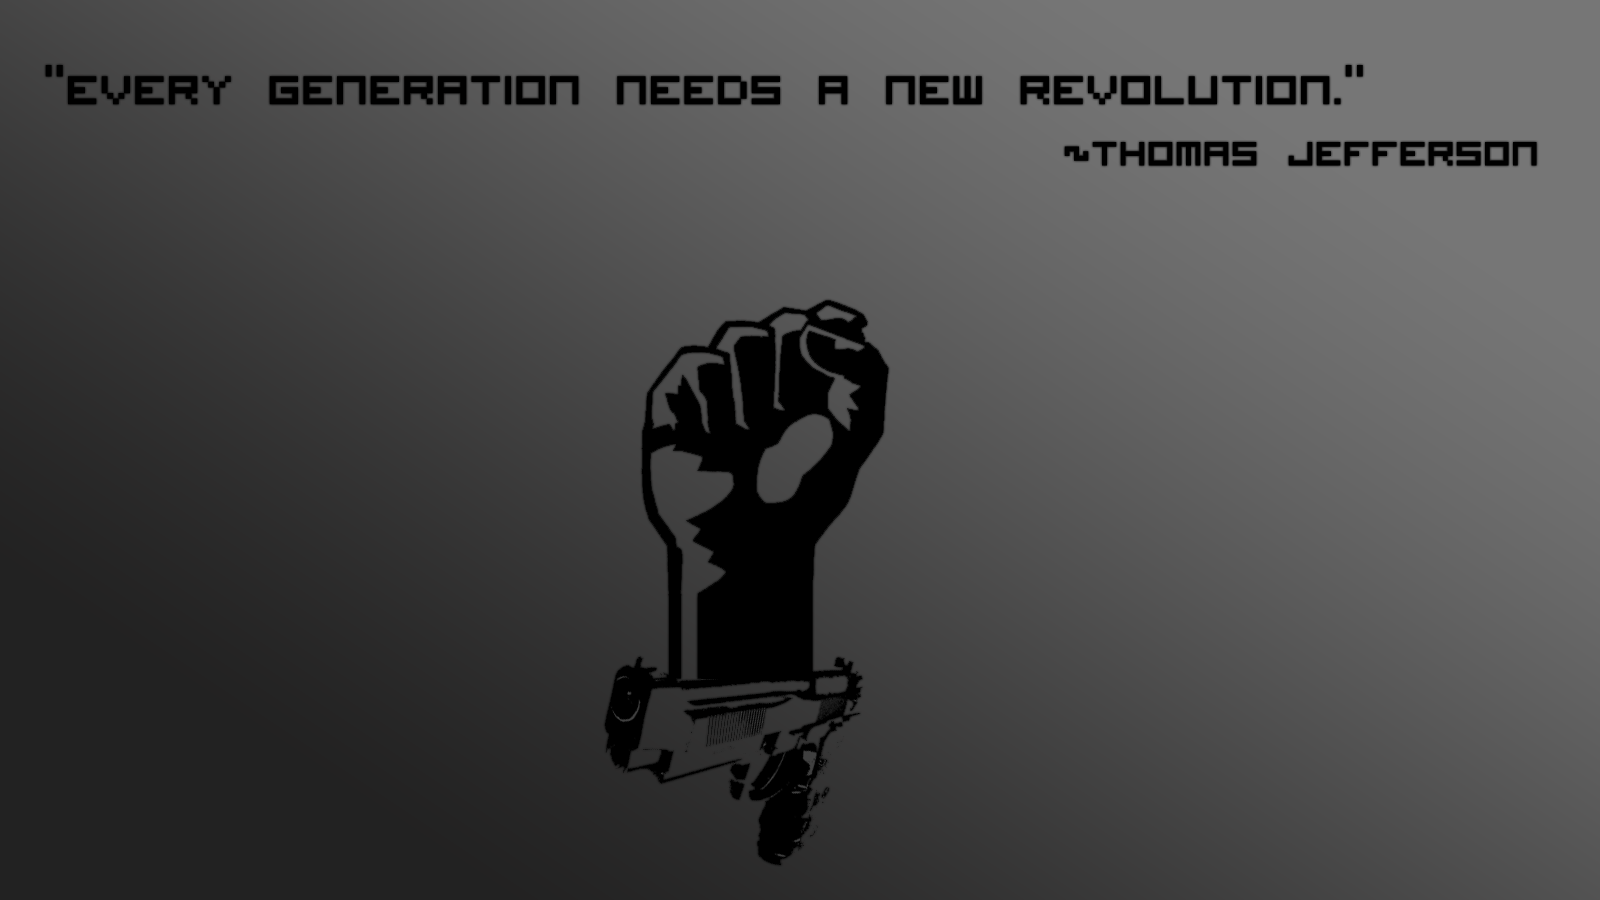 Quotes From The French Revolution Quotesgram: Revolution Quotes. QuotesGram